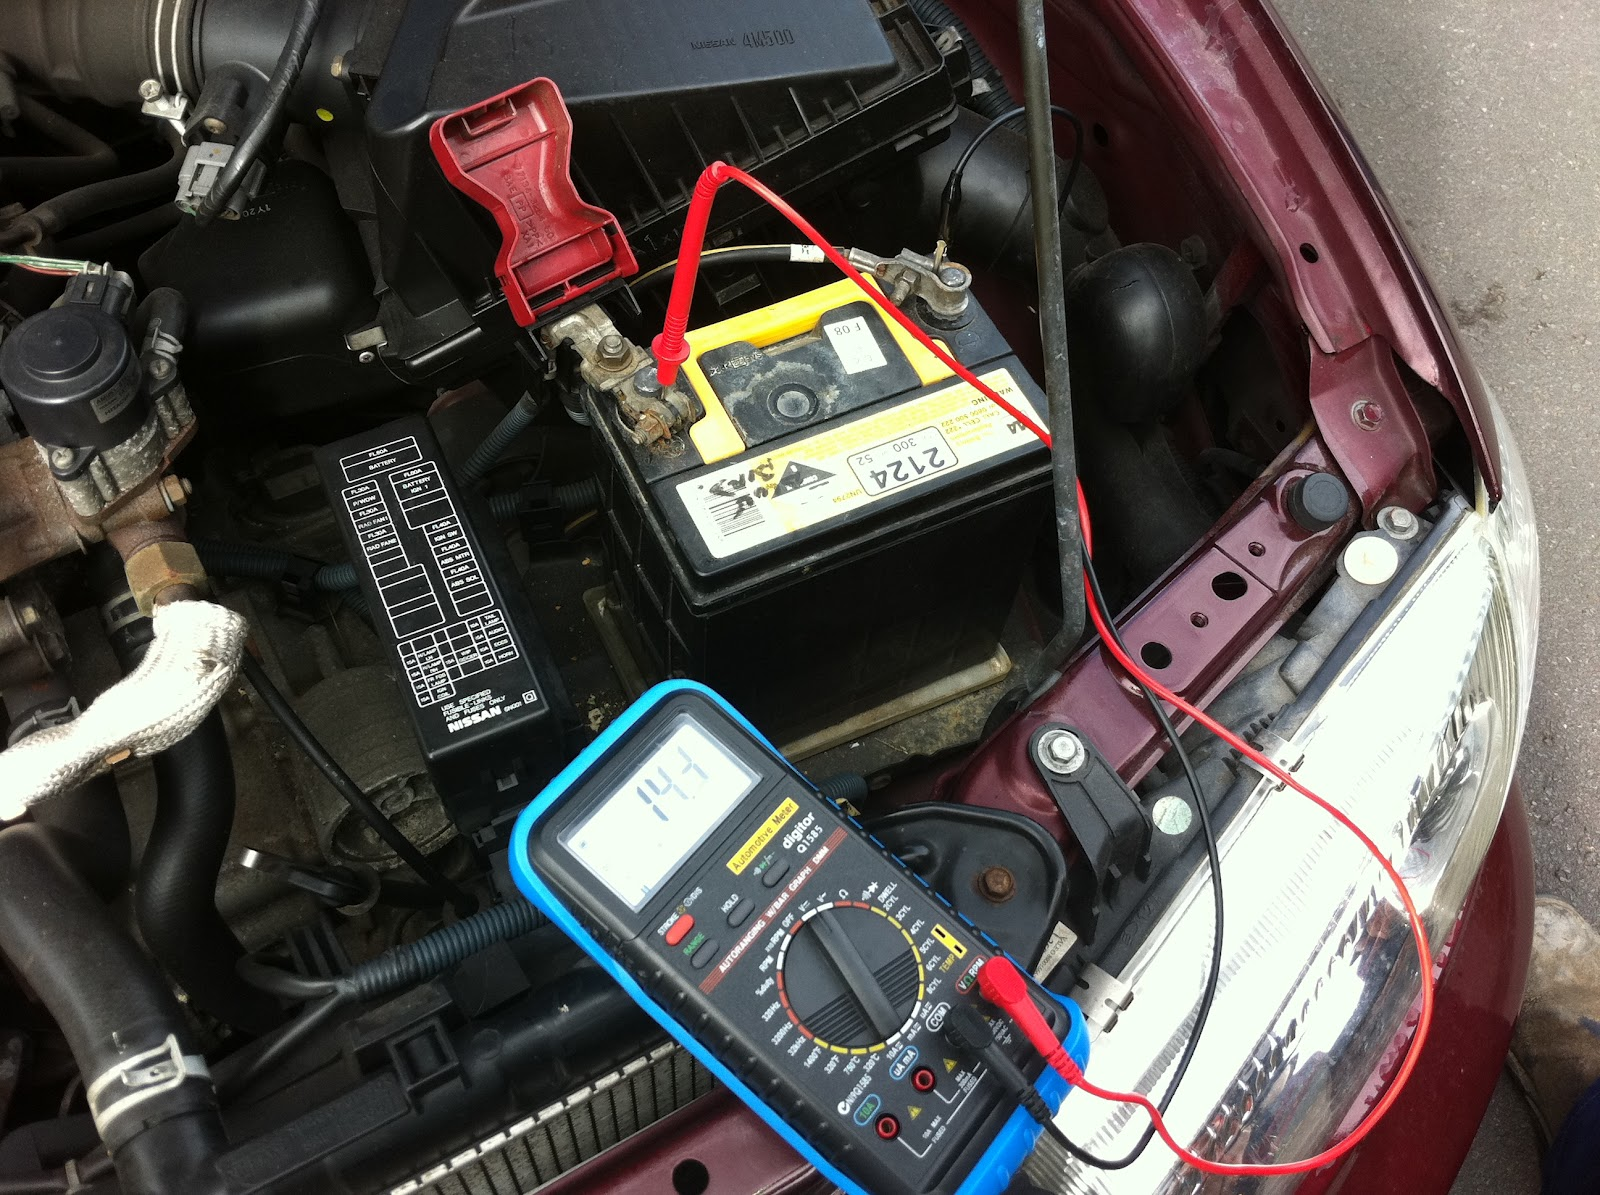 Multimeter Certificate In Applied Technology Automotive Engineering Car Wiring To The Right Is A Diagram Showing How Measure Amps